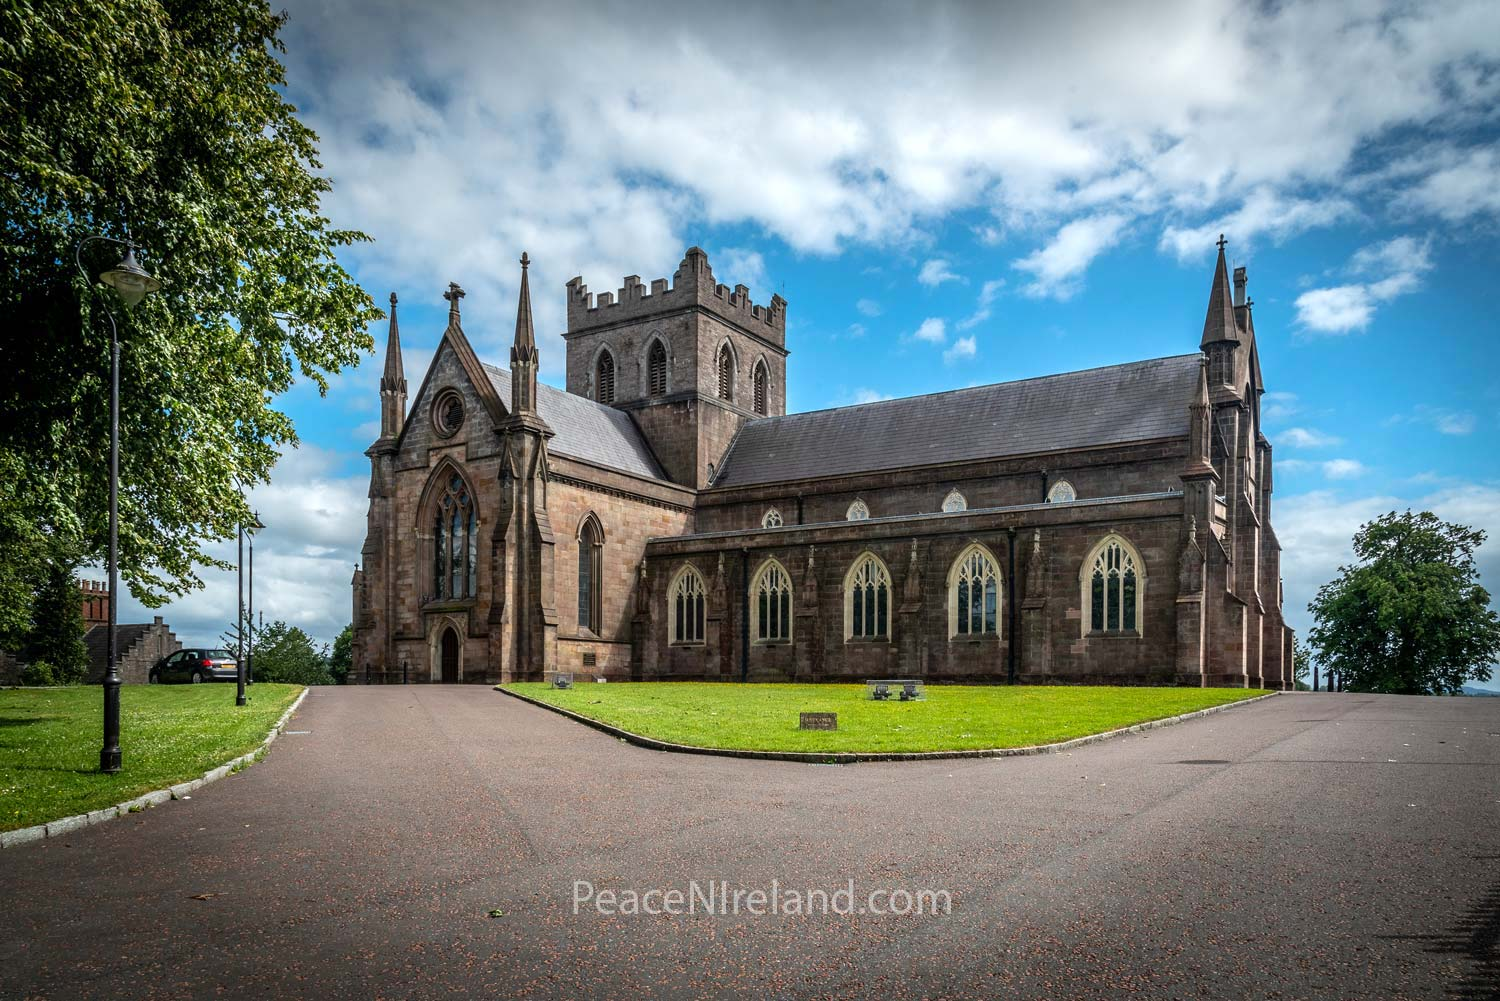 The second St Patrick's Cathedral, Armagh